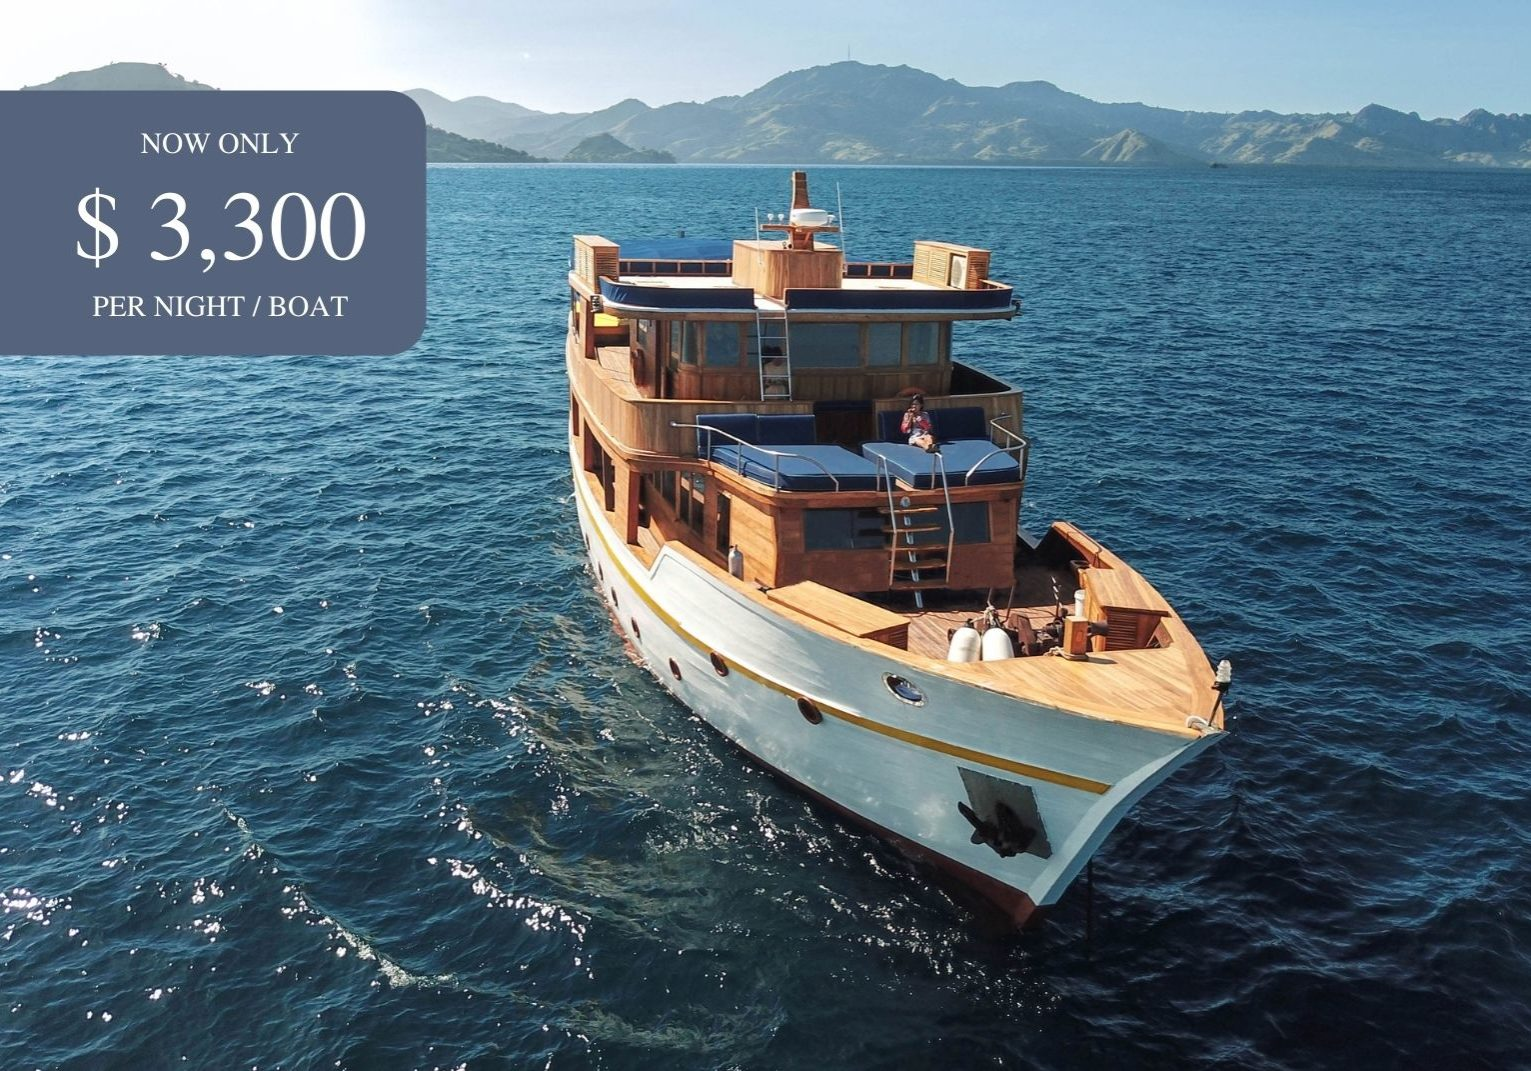 Magia 2 yacht | Now only $3300 per night | Hello Flores